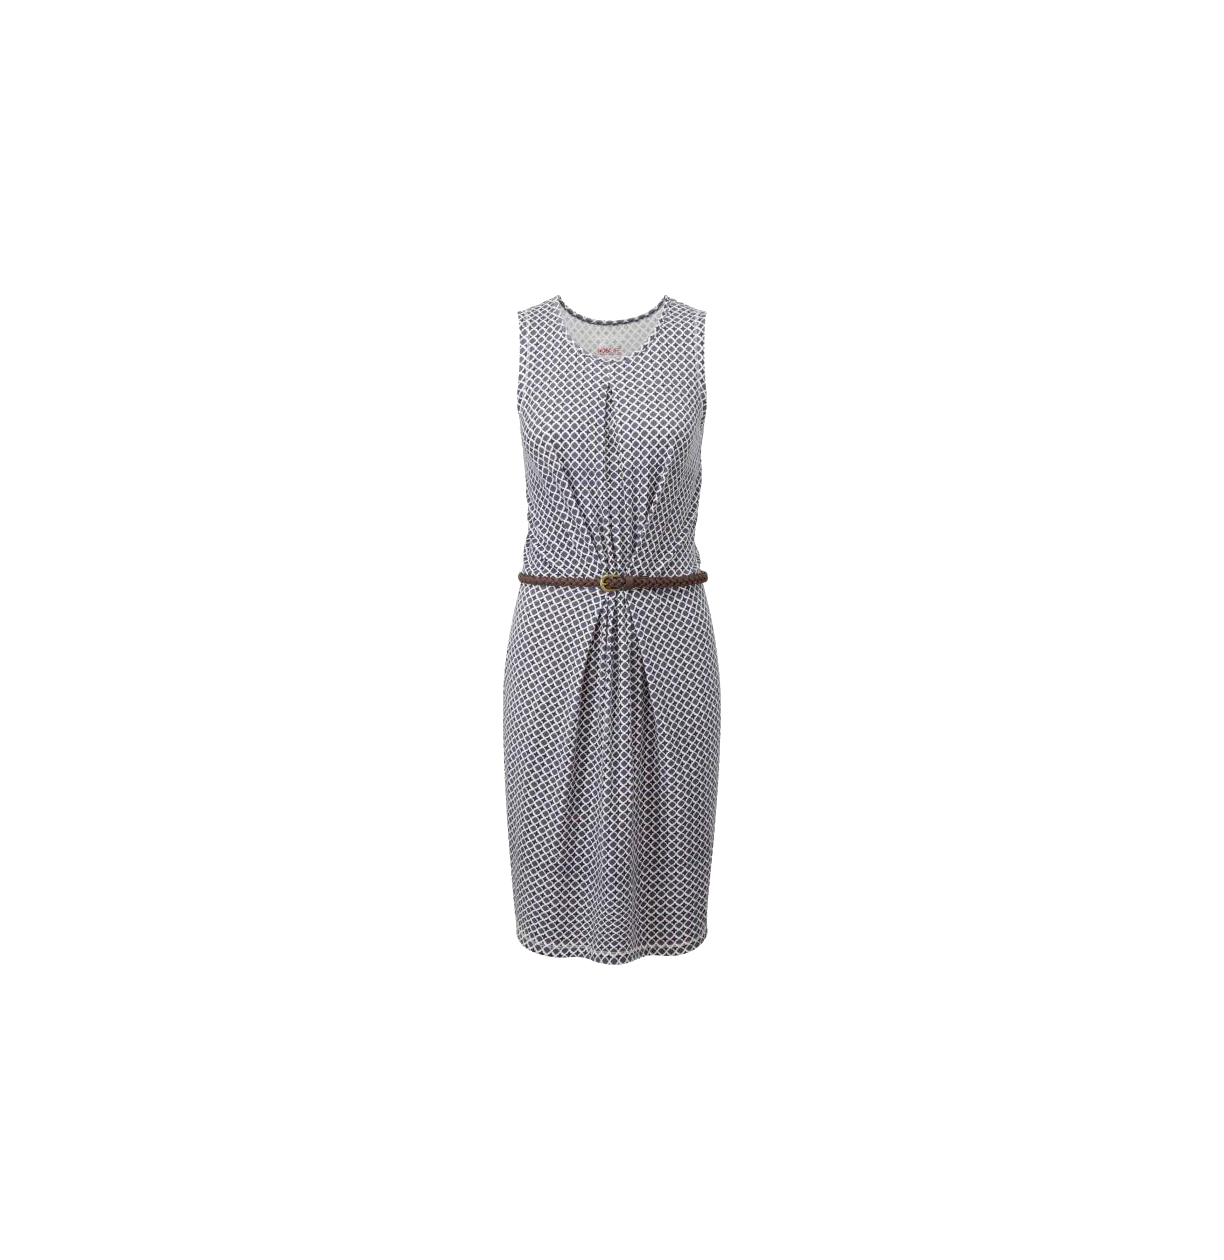 Insectshield Astrid Dress